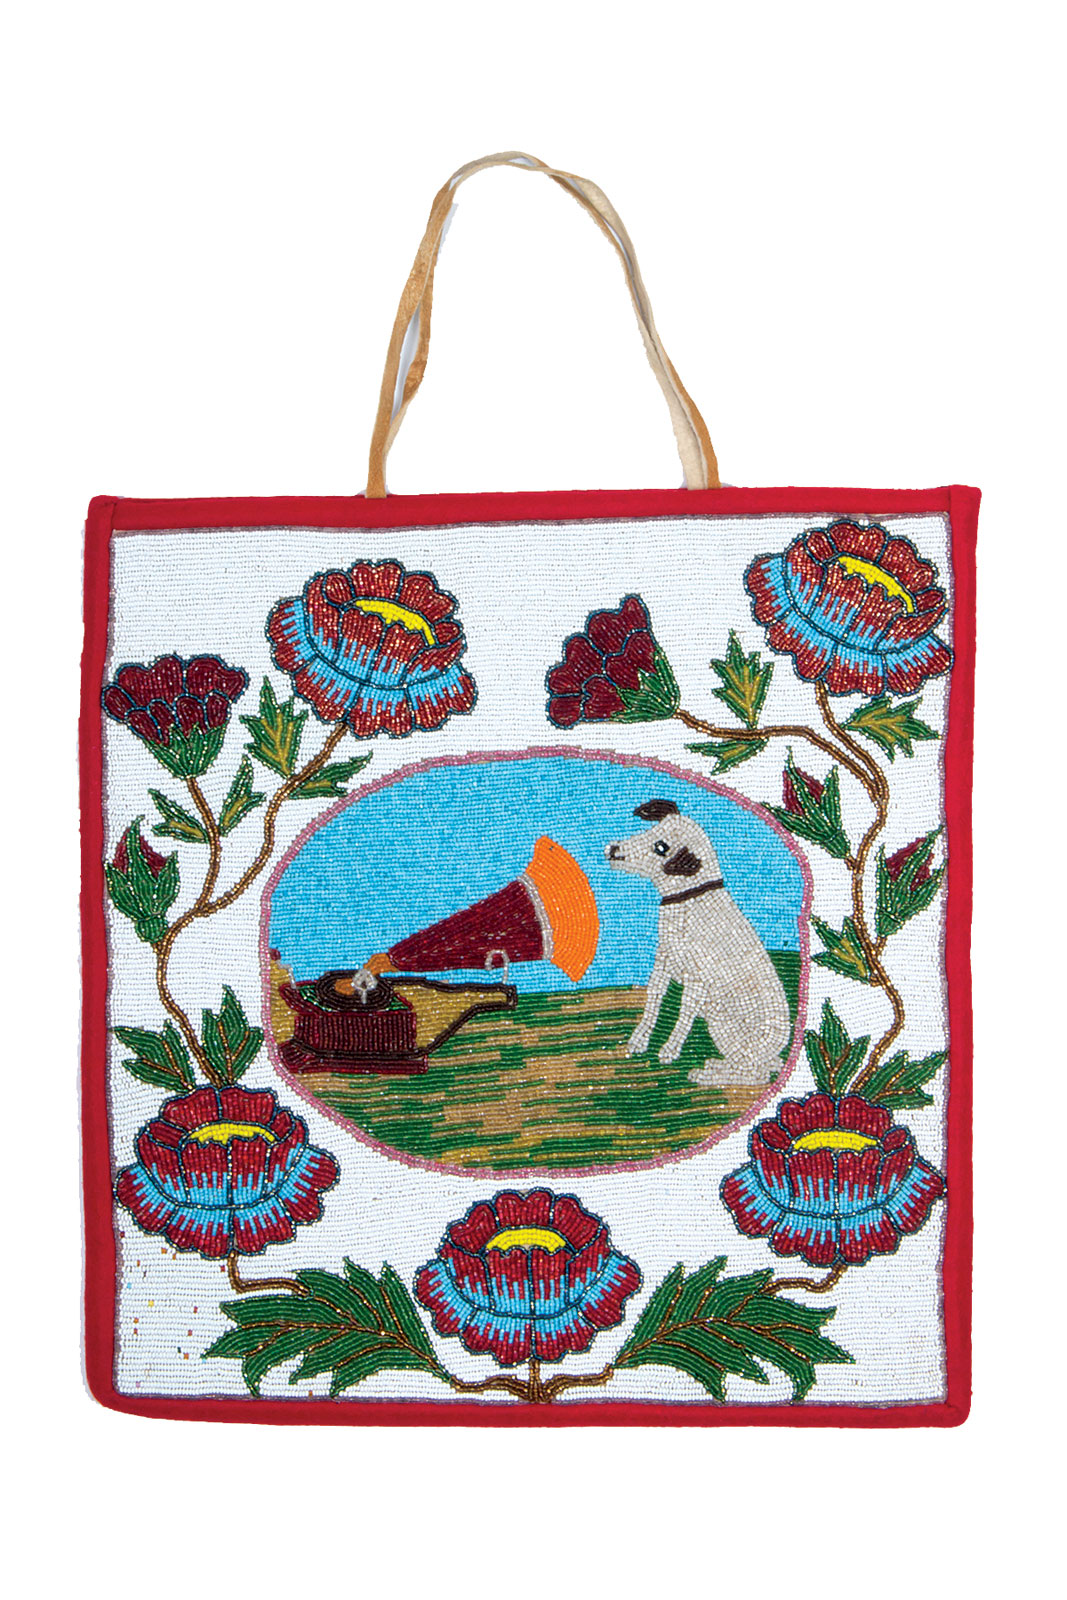 NIPPER FLAT BAG by Plateau artist, 62.2 x 38.1 centimeters, circa 1940.  Private collection.  Plateau beadworkers drew inspiration from many sources, including advertising art. This bag depicts Nipper, the trademark of the RCA Victor company beginning in 1929.